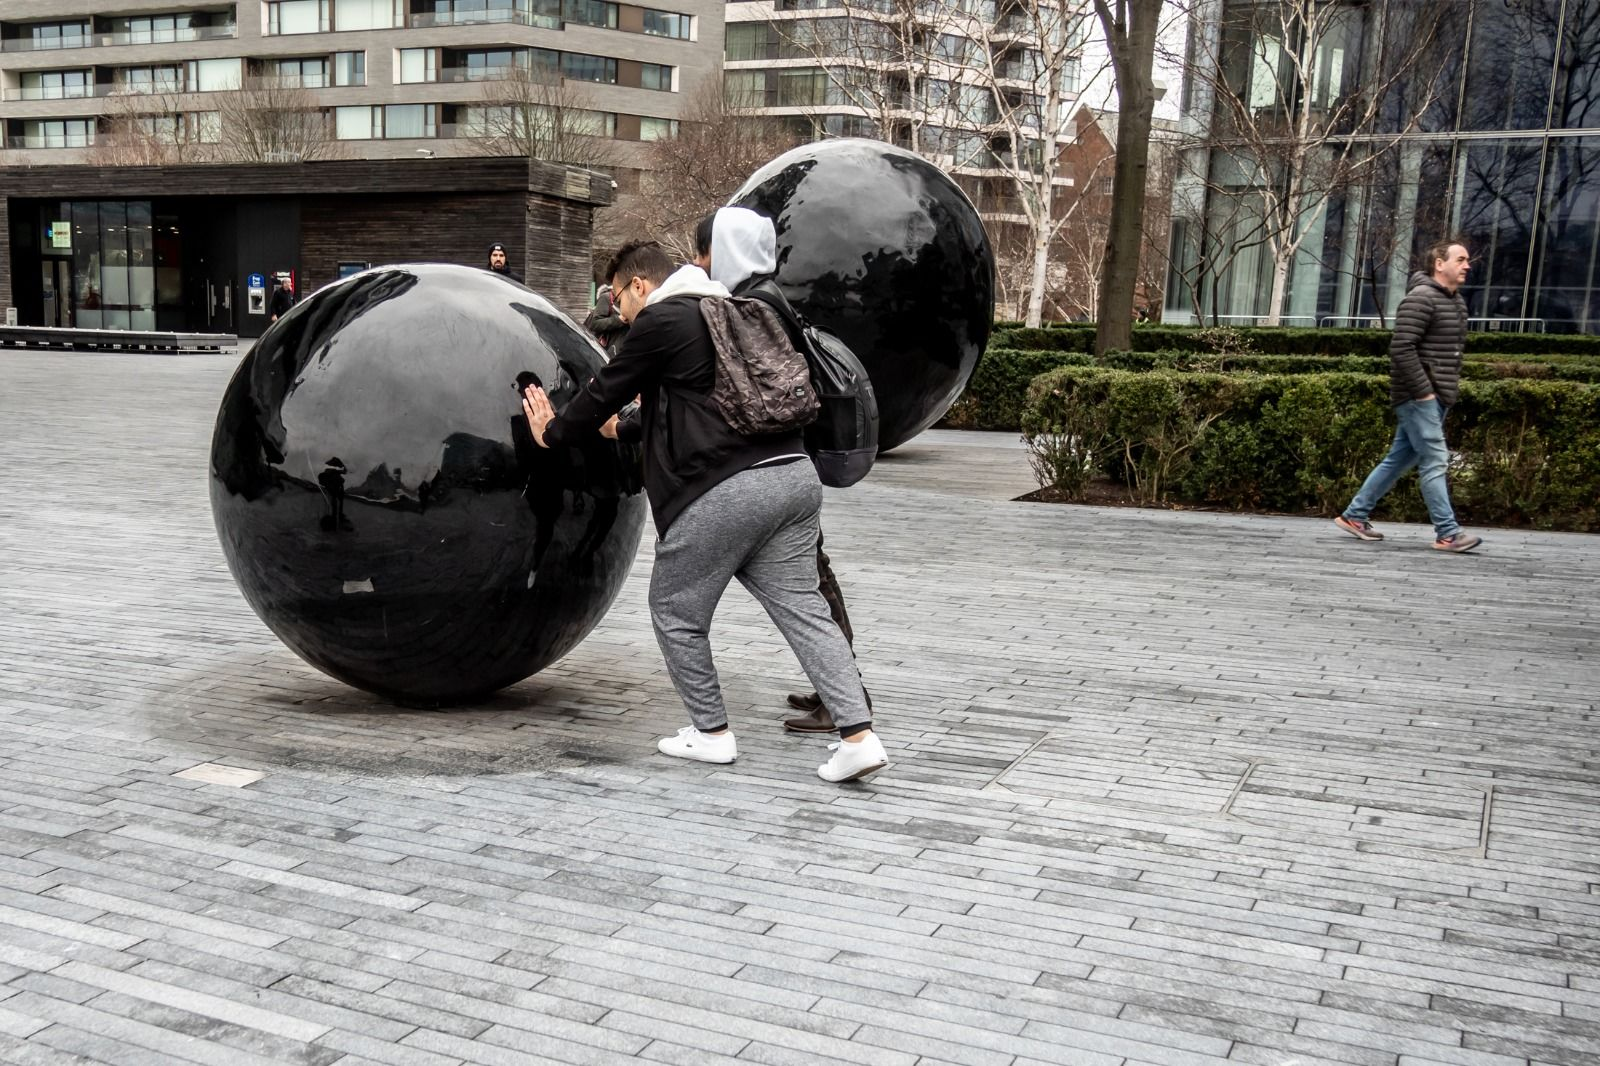 Street photography of a man pretending to push a large stone ball on Bankside, London.